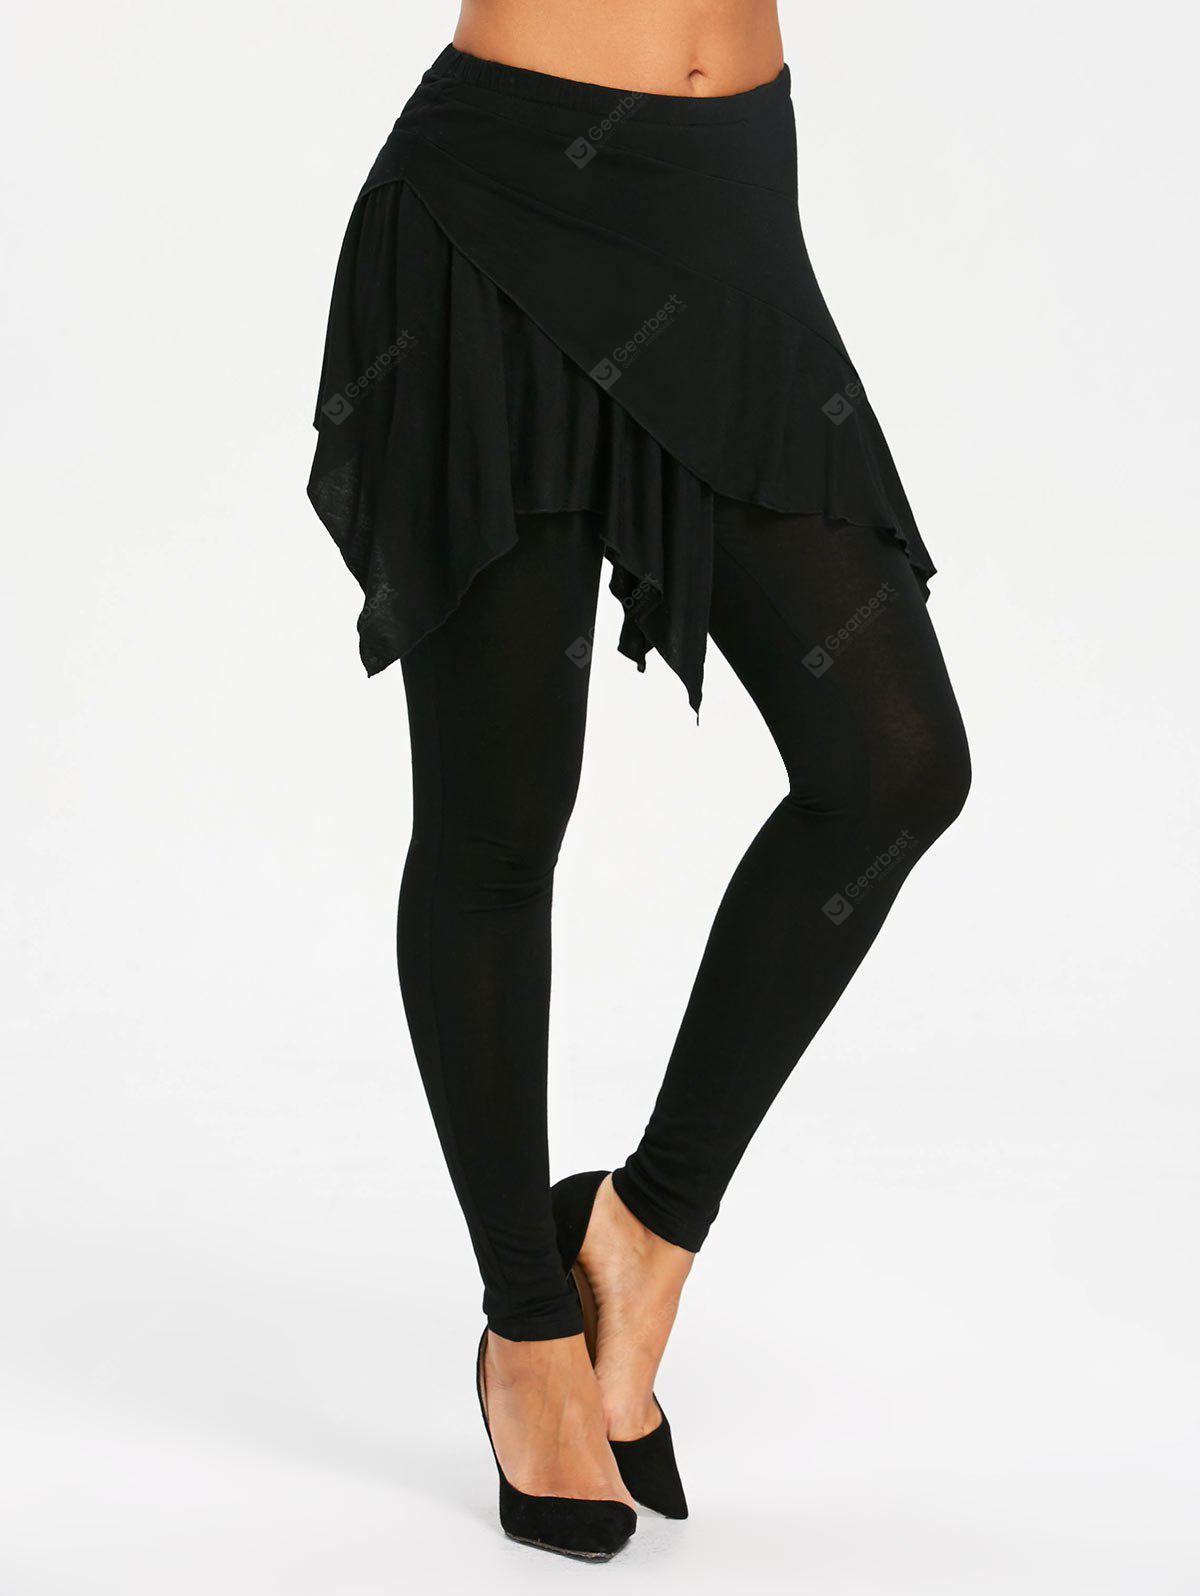 Handkerchief Skirted Leggings with High Waist